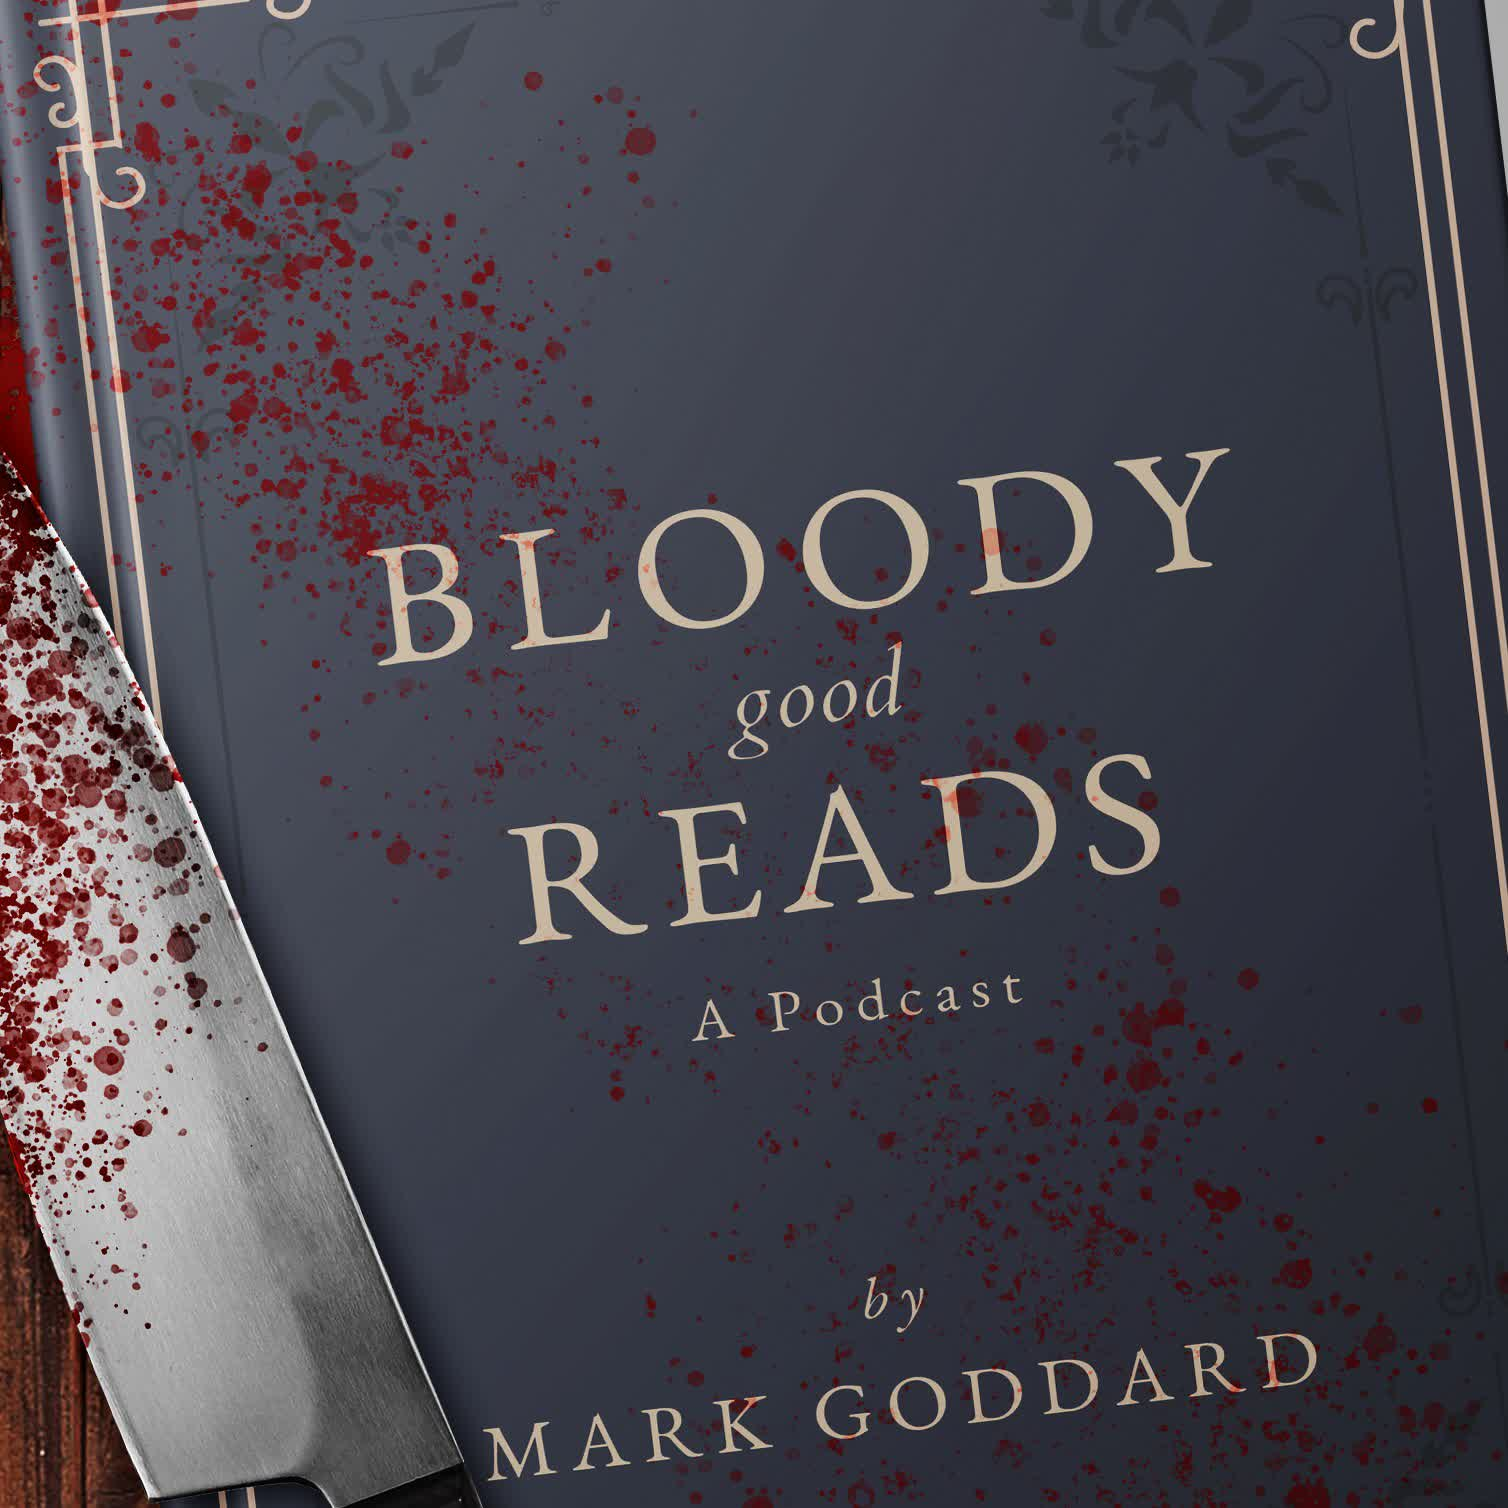 Bloody Good Reads Episode 3 - David Moody